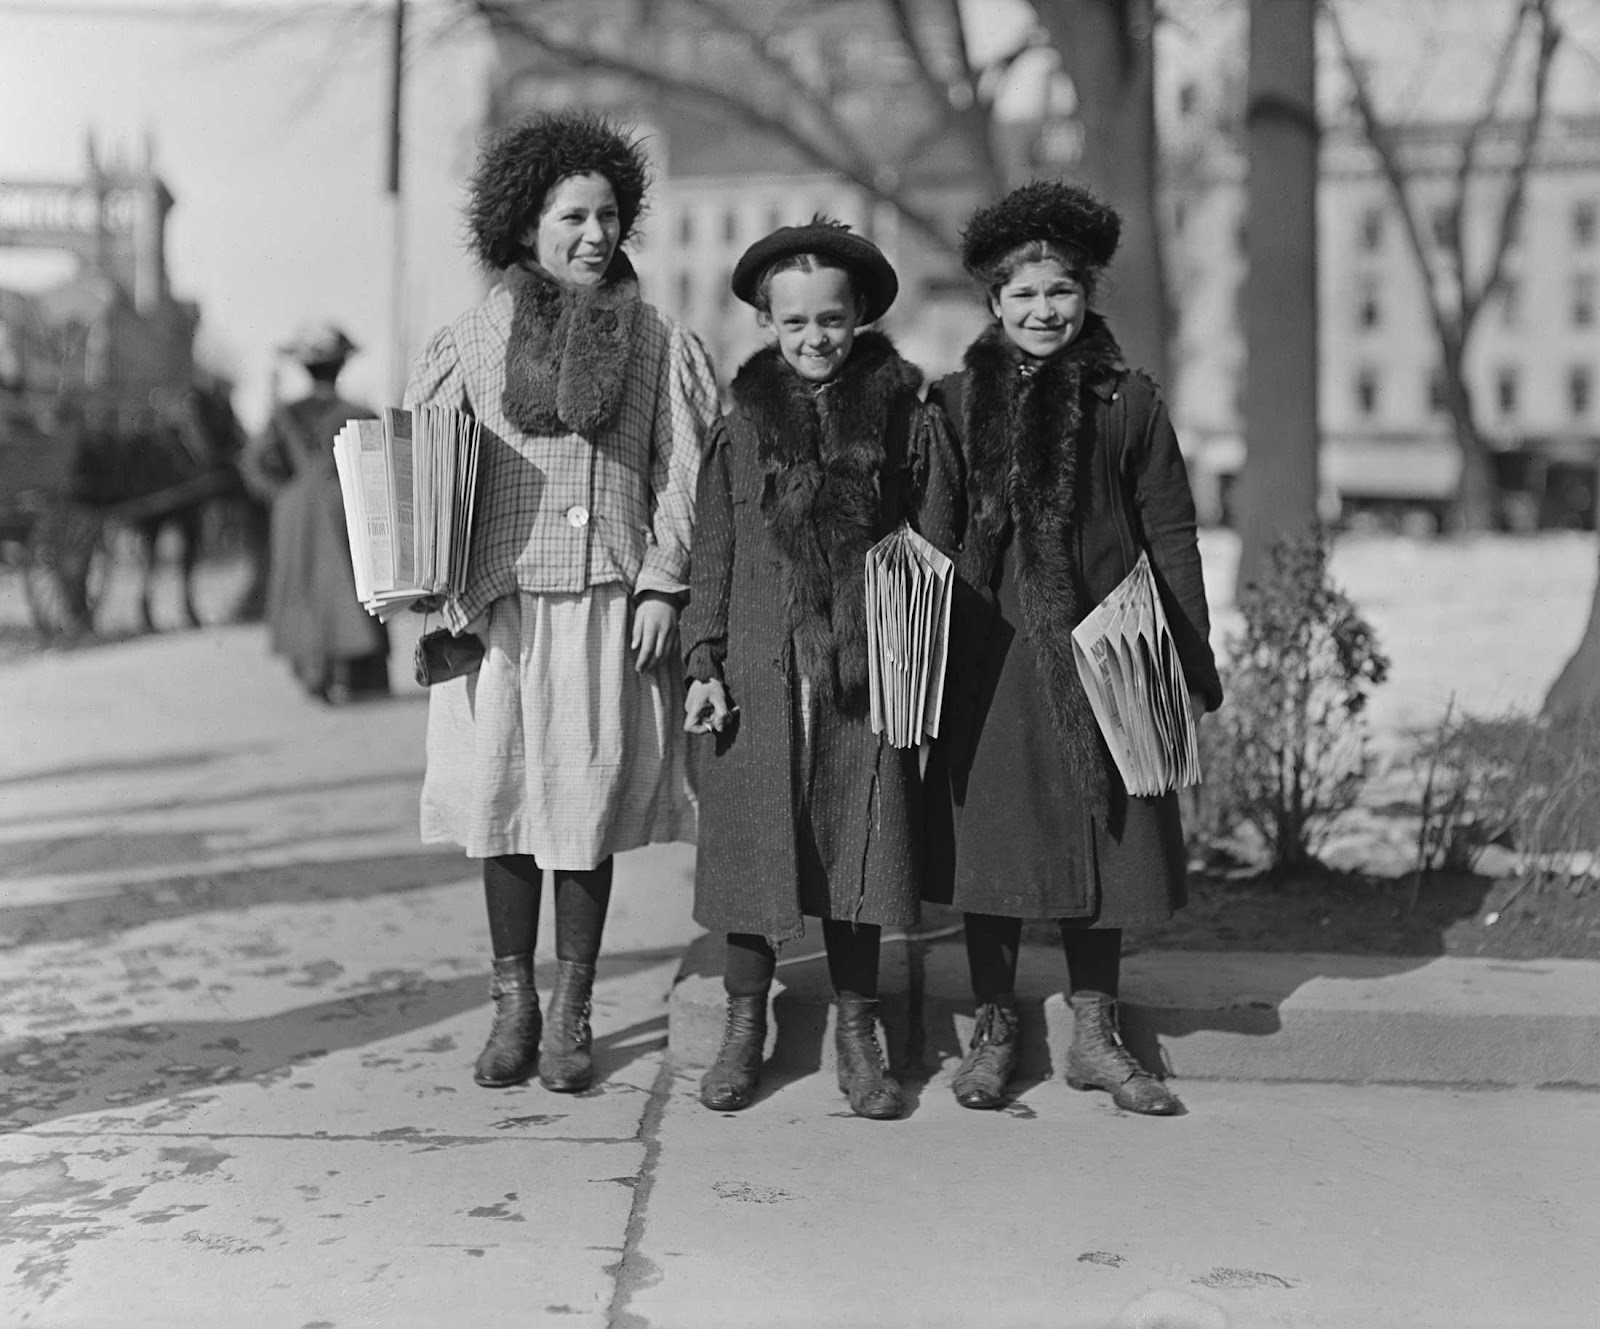 Lewis Hine - Have been selling 2 years. Youngest, Yedda Welled, is 11 years old. Next, Rebecca Cohen, is 12. Next, Rebecca Kirwin, is 14. Hartford, Connecticut, 1909